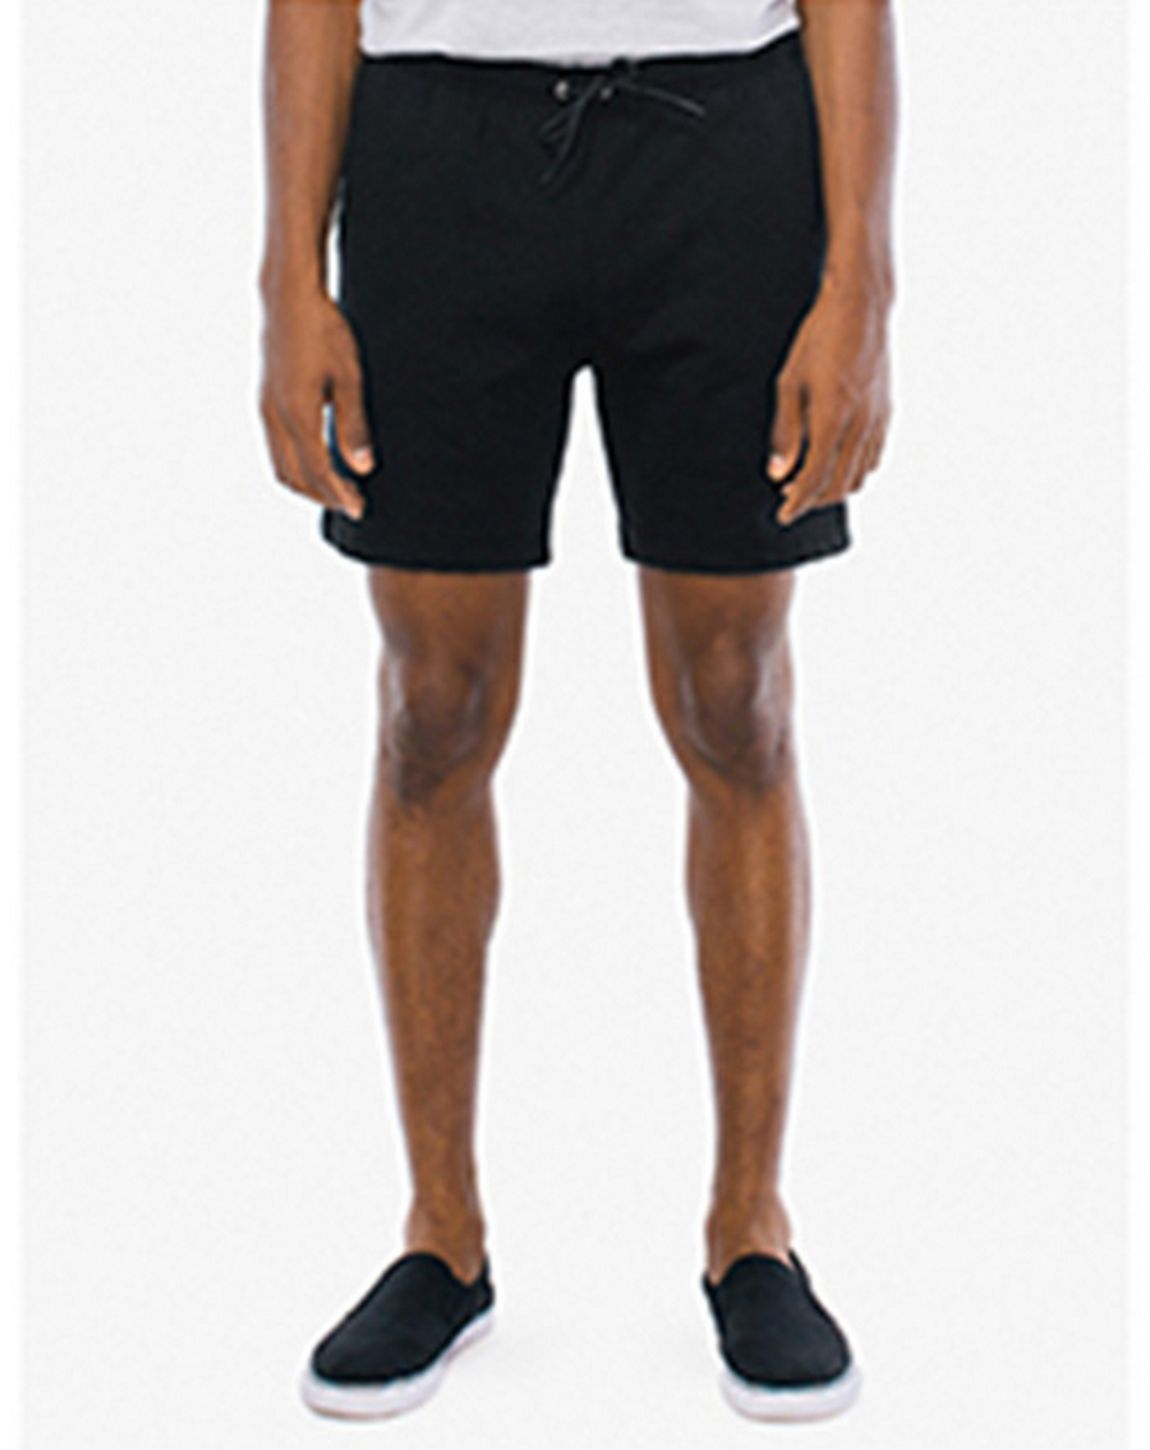 American Apparel A54239W Unisex California Fleece Gym Short